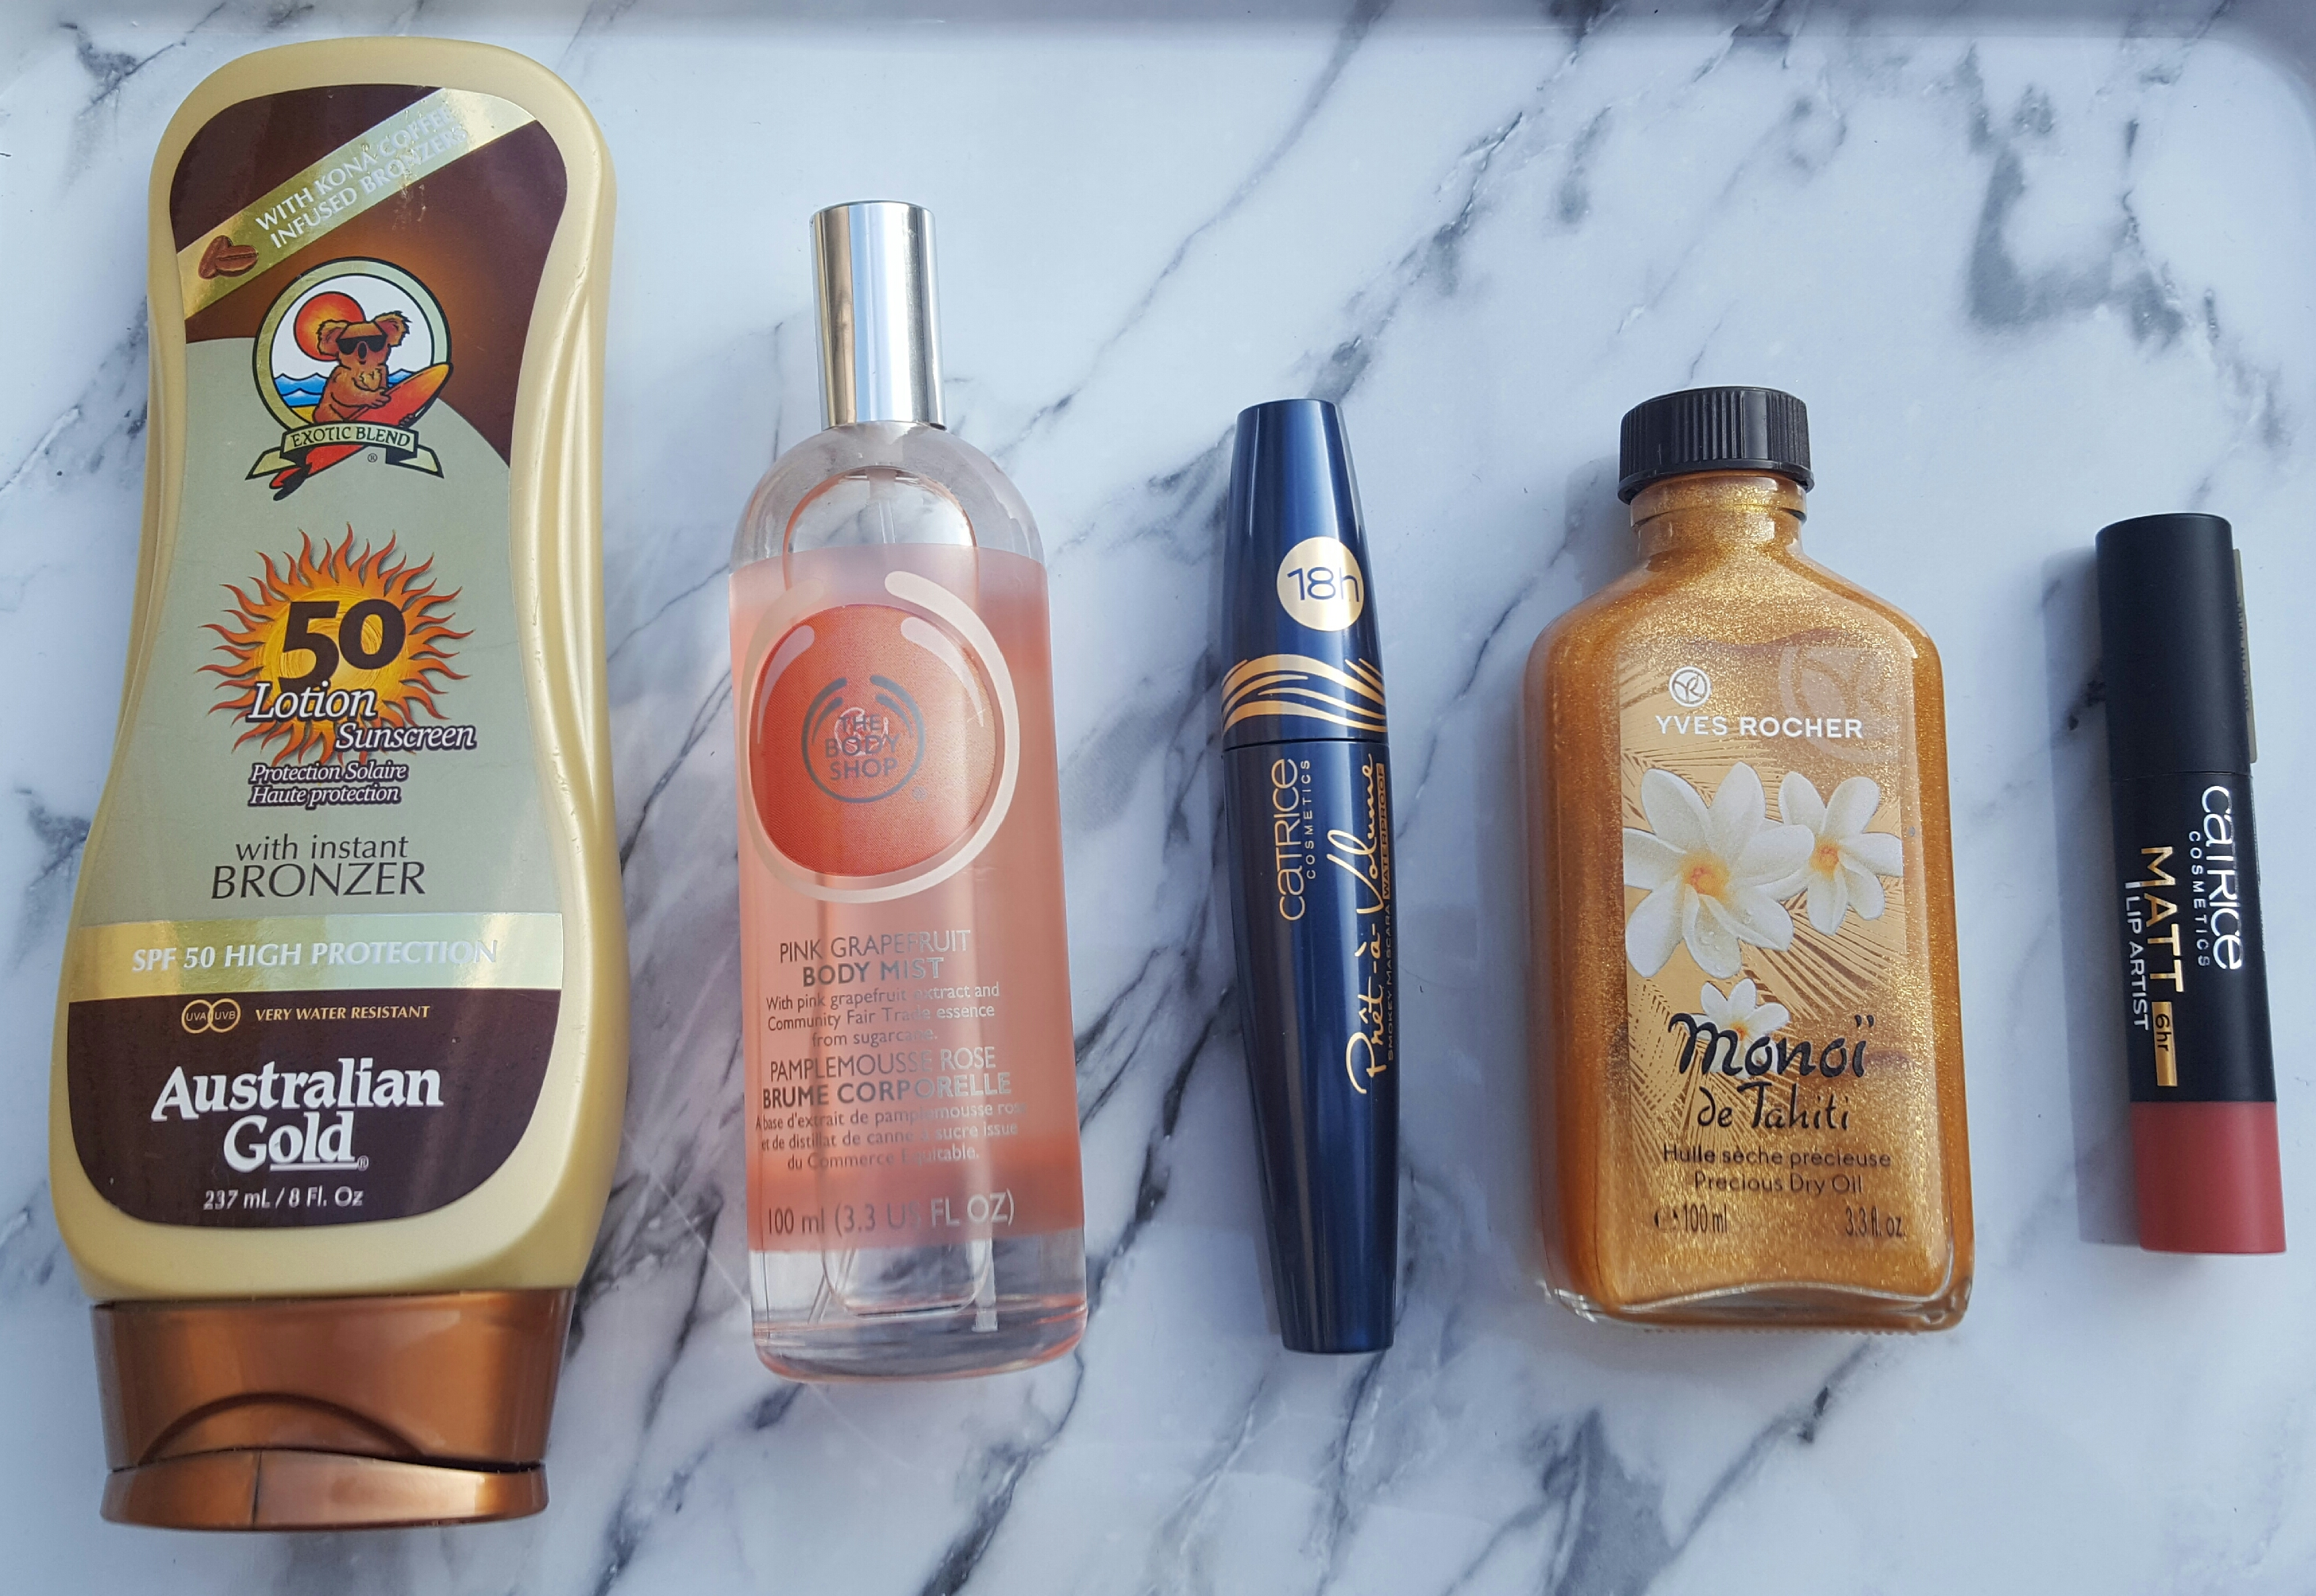 Favoriete producten Australian Gold Yves Rocher Catrice The Body Shop